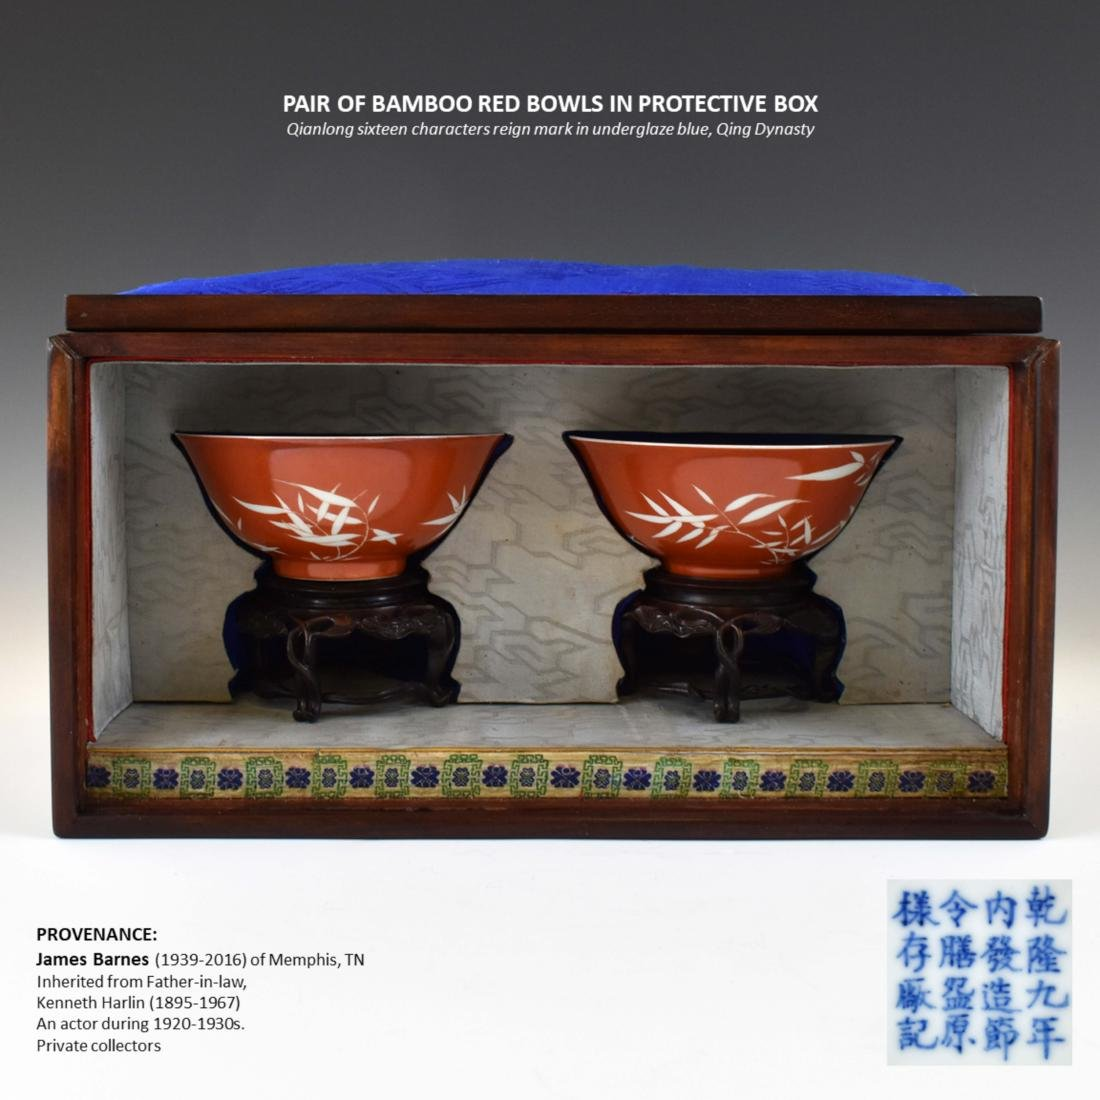 PAIR OF BAMBOO RED BOWLS IN PROTECTIVE BOX